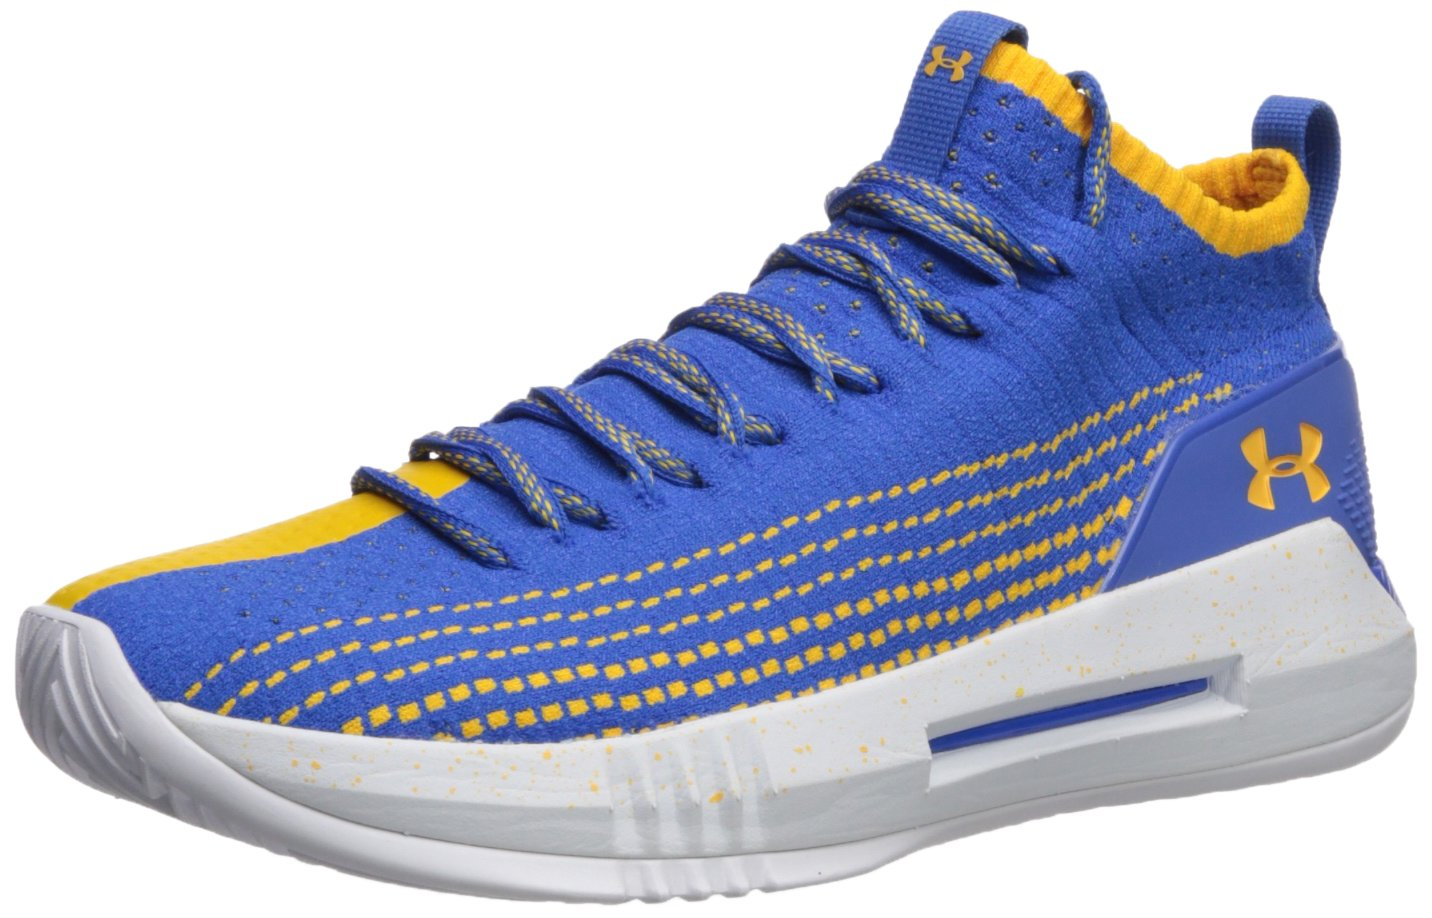 Under Armour Men's Heat Seeker Basketball Shoe, Blue, 12 by Under Armour